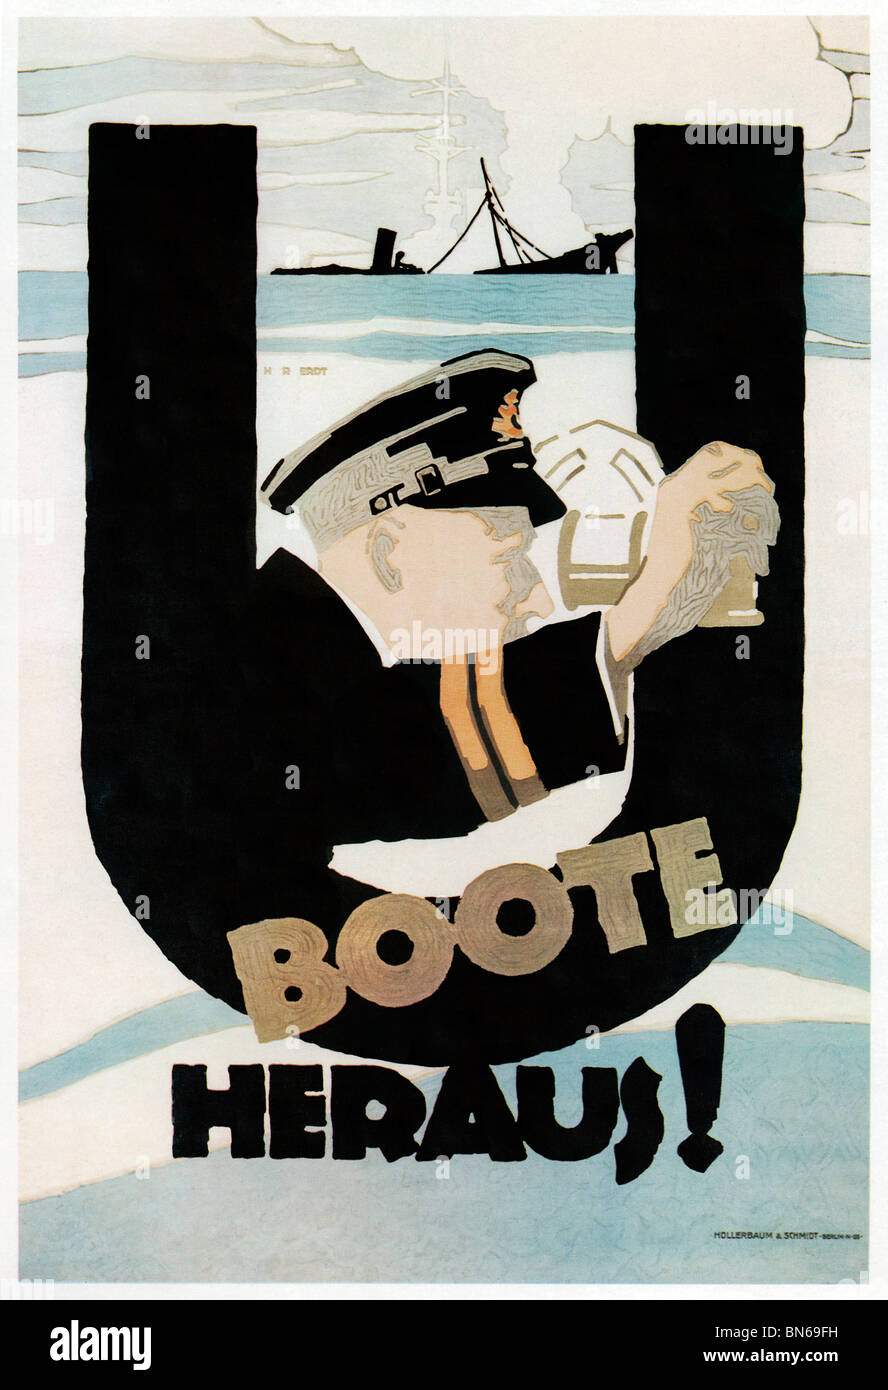 U Boats Away, 1917 poster by Erdt for a German propaganda film about submarine warfare and a sortie by U-178 from - Stock Image